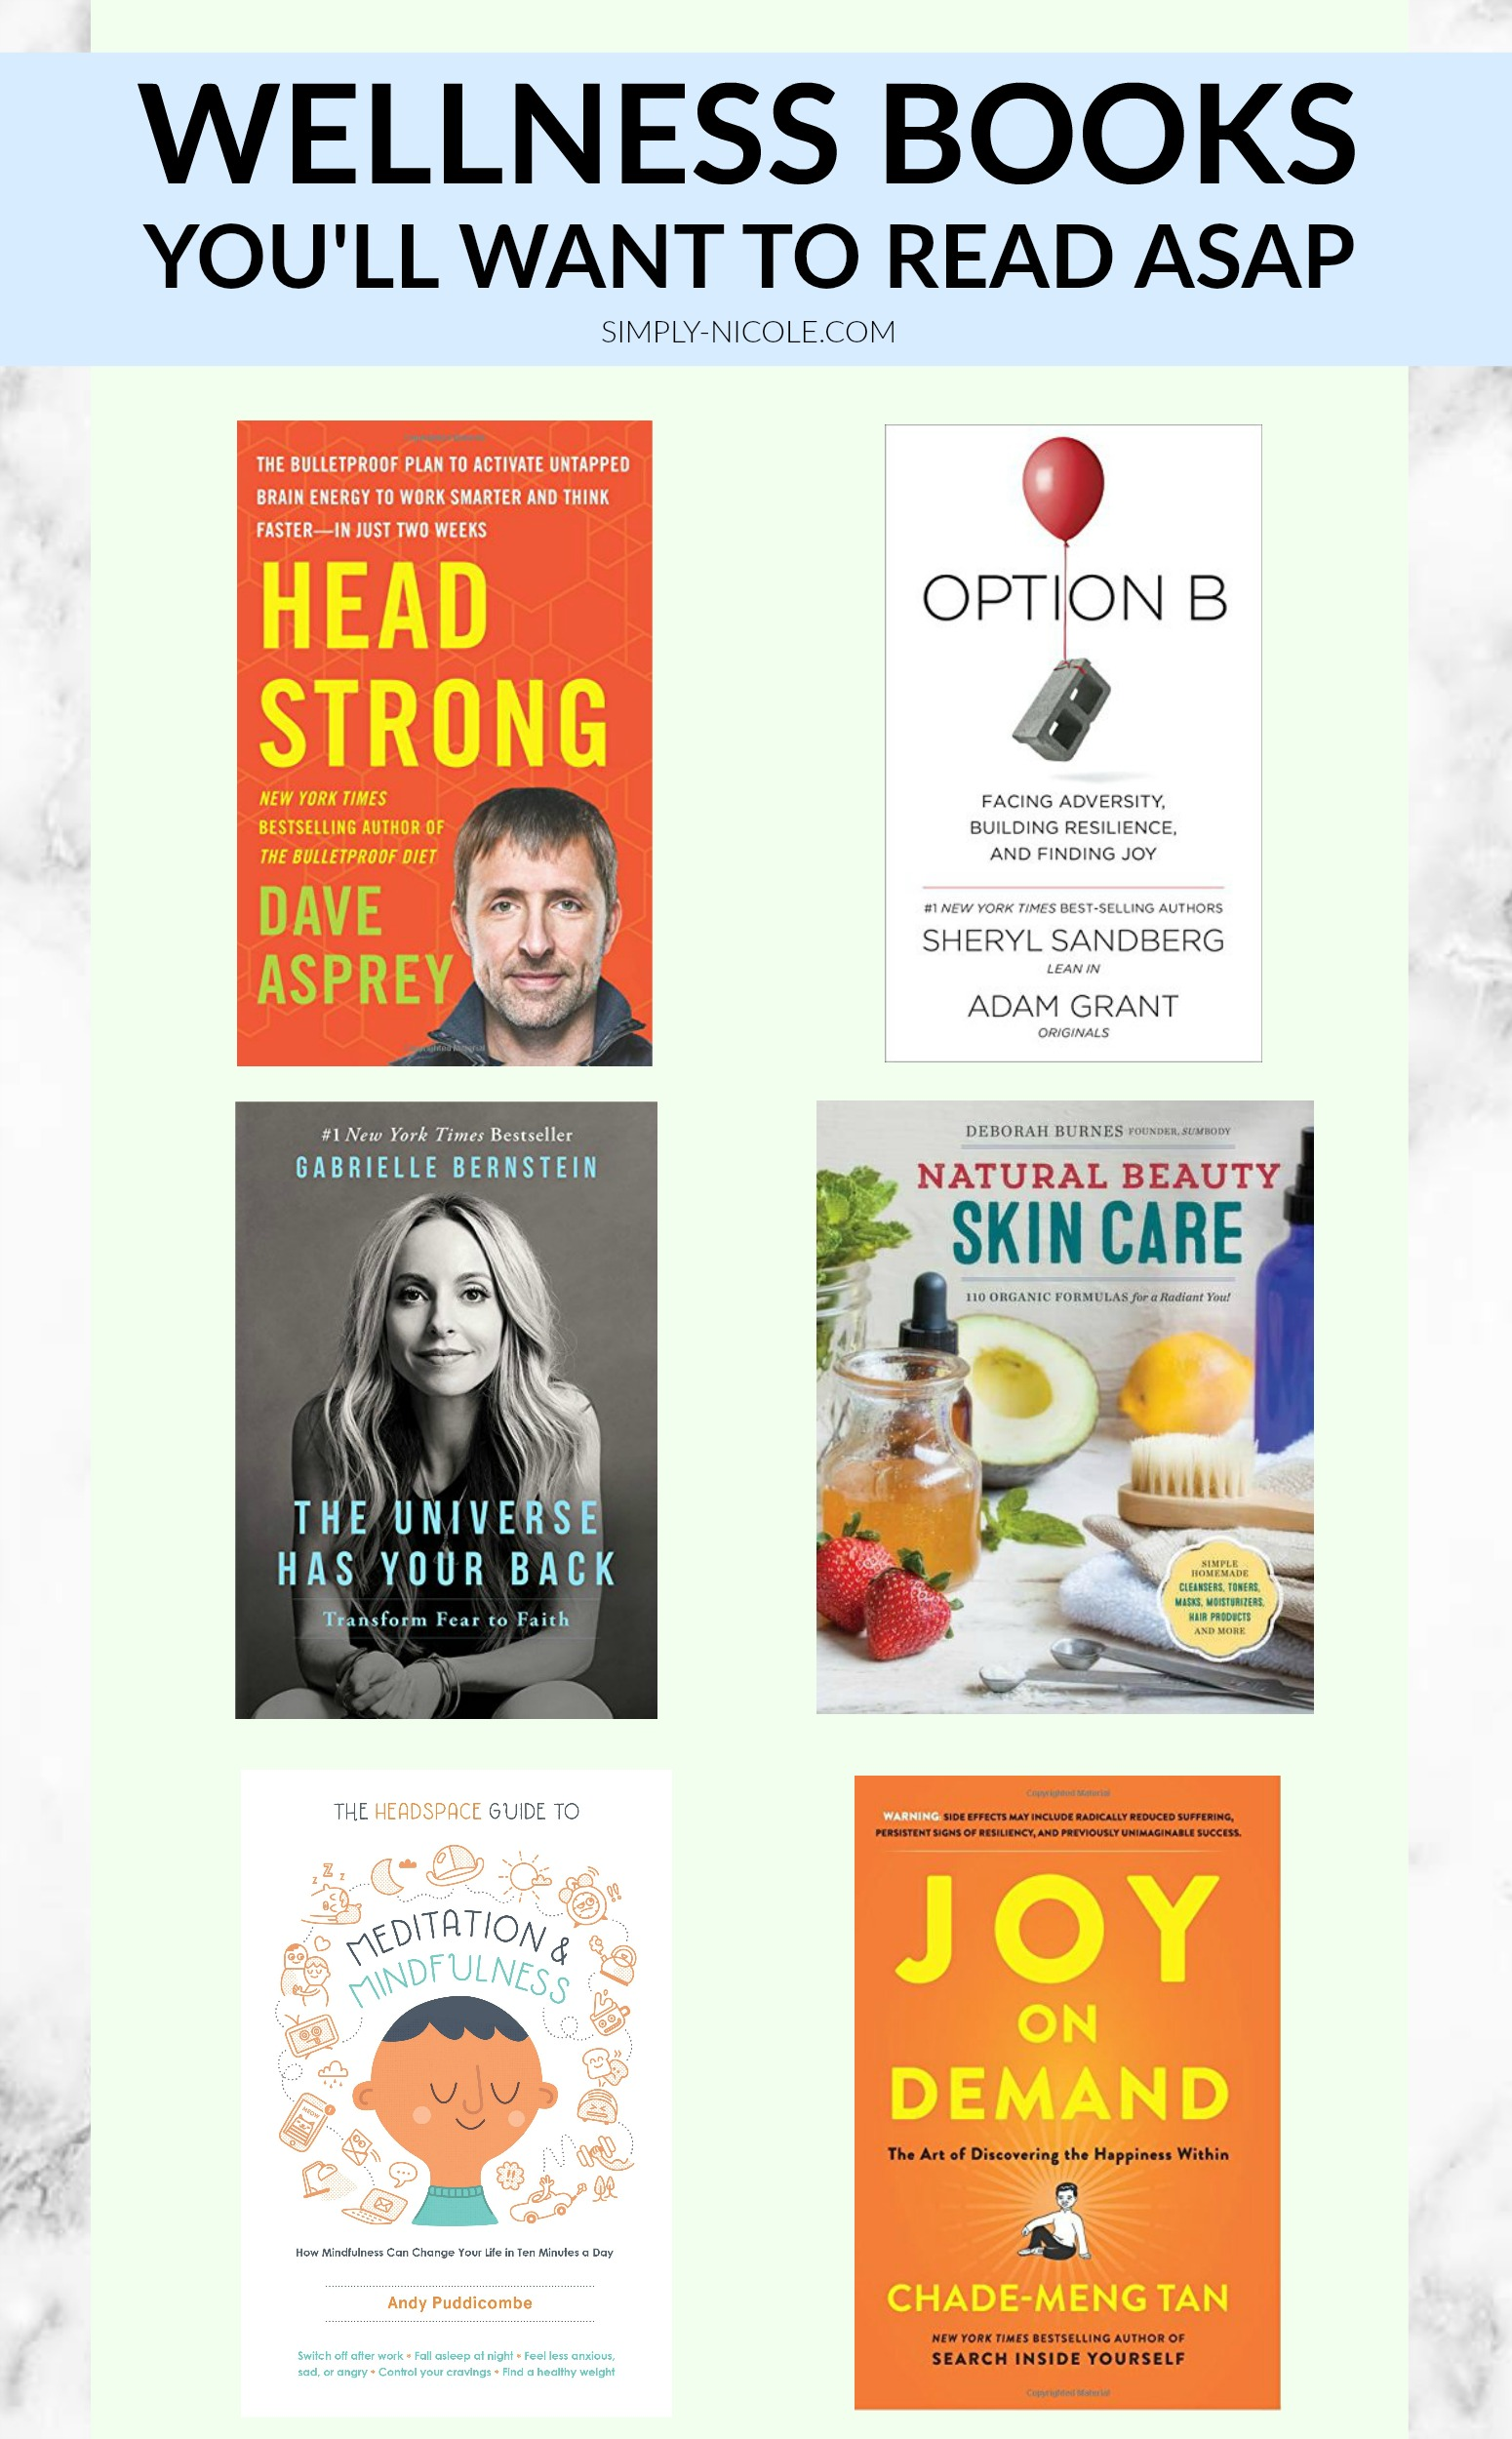 Wellness Books You'll Want to Read ASAP